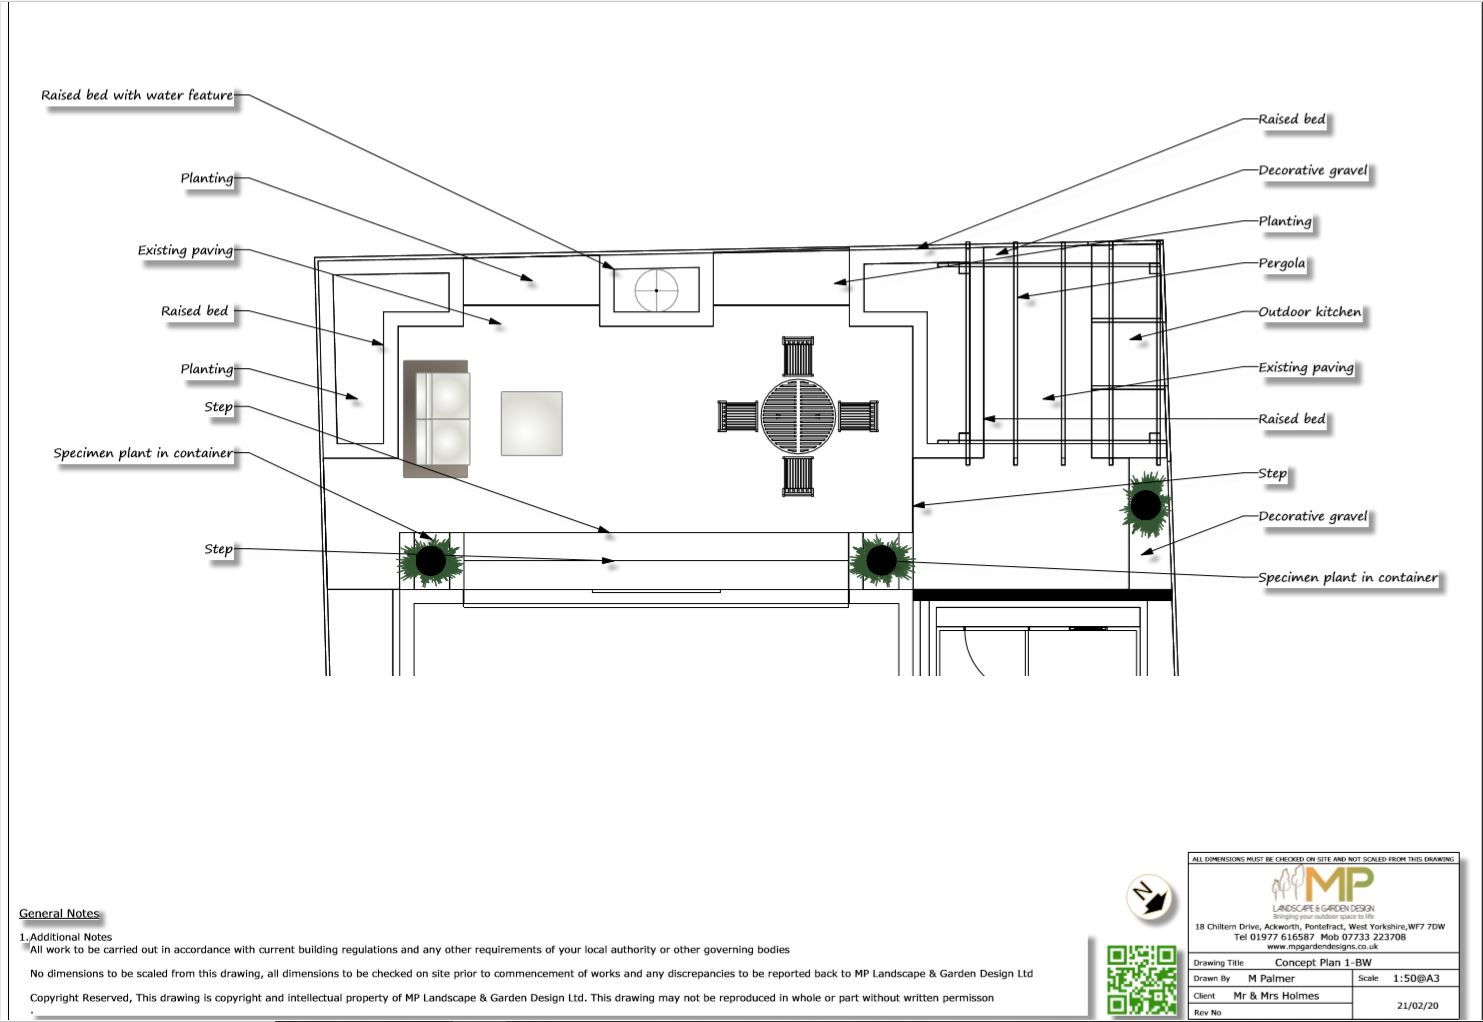 3, Concept plan-1 for a rear garden in Wakefield